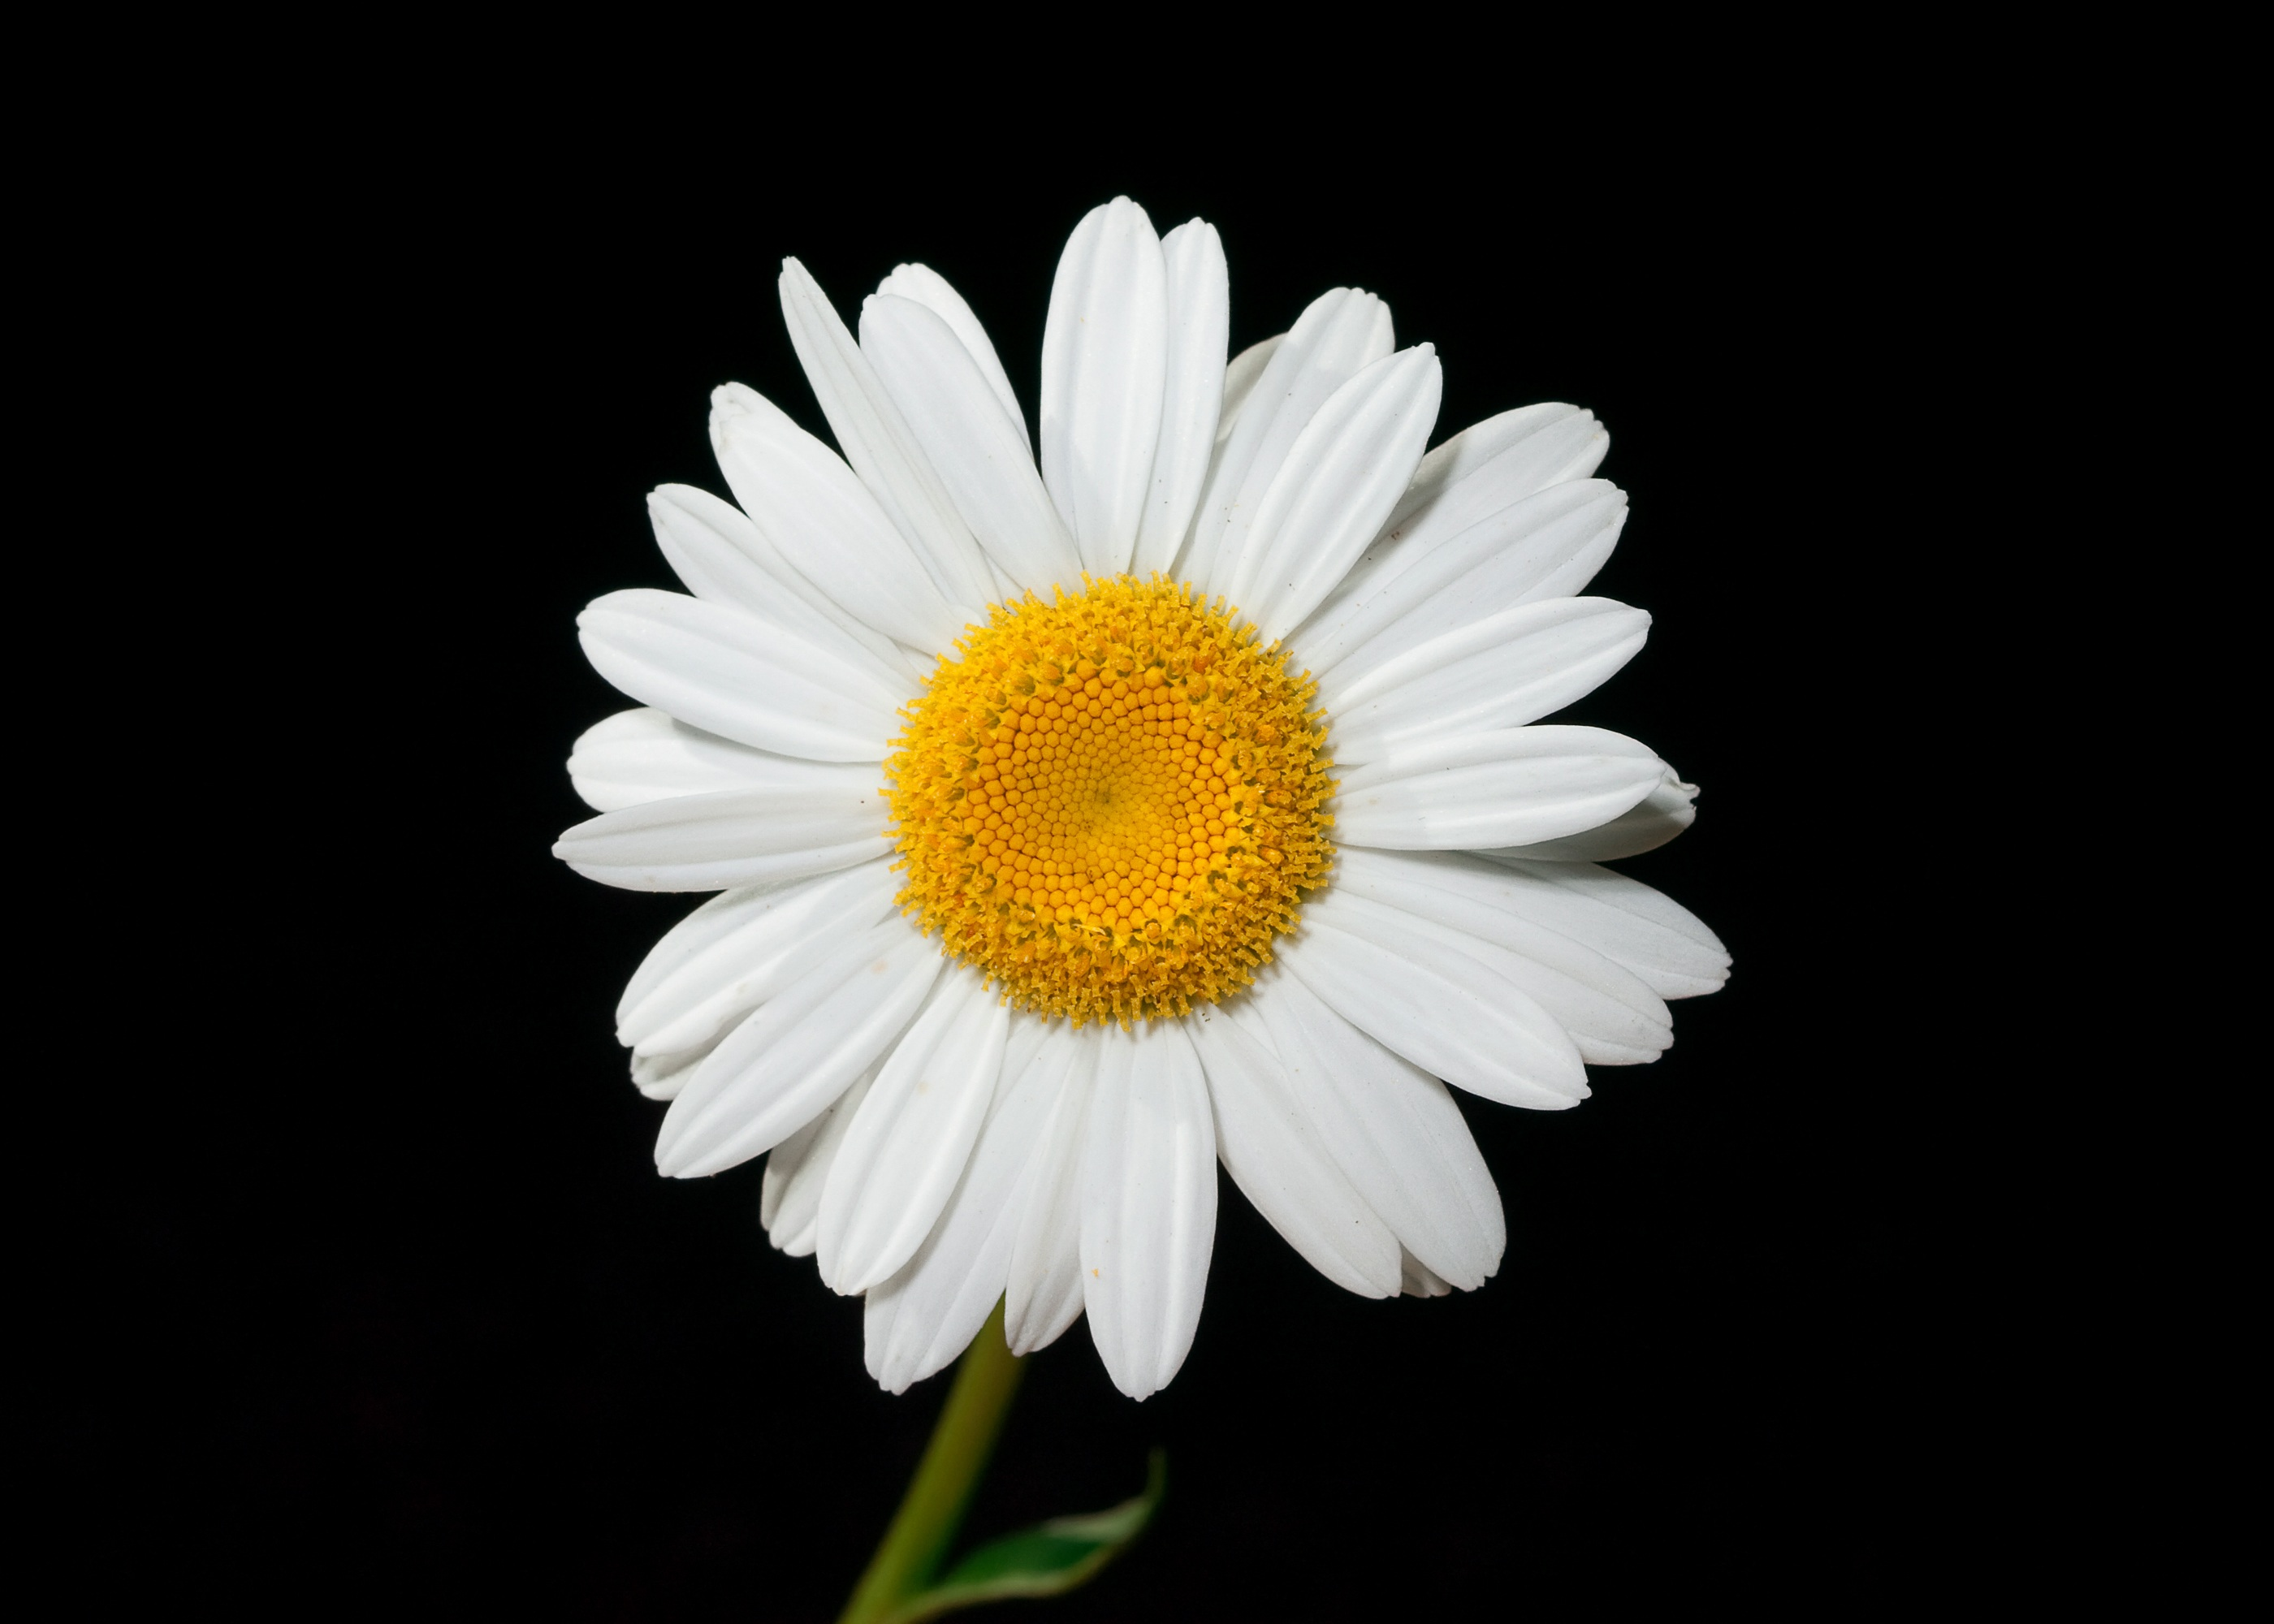 free stock photos of daisy · pexels, Natural flower